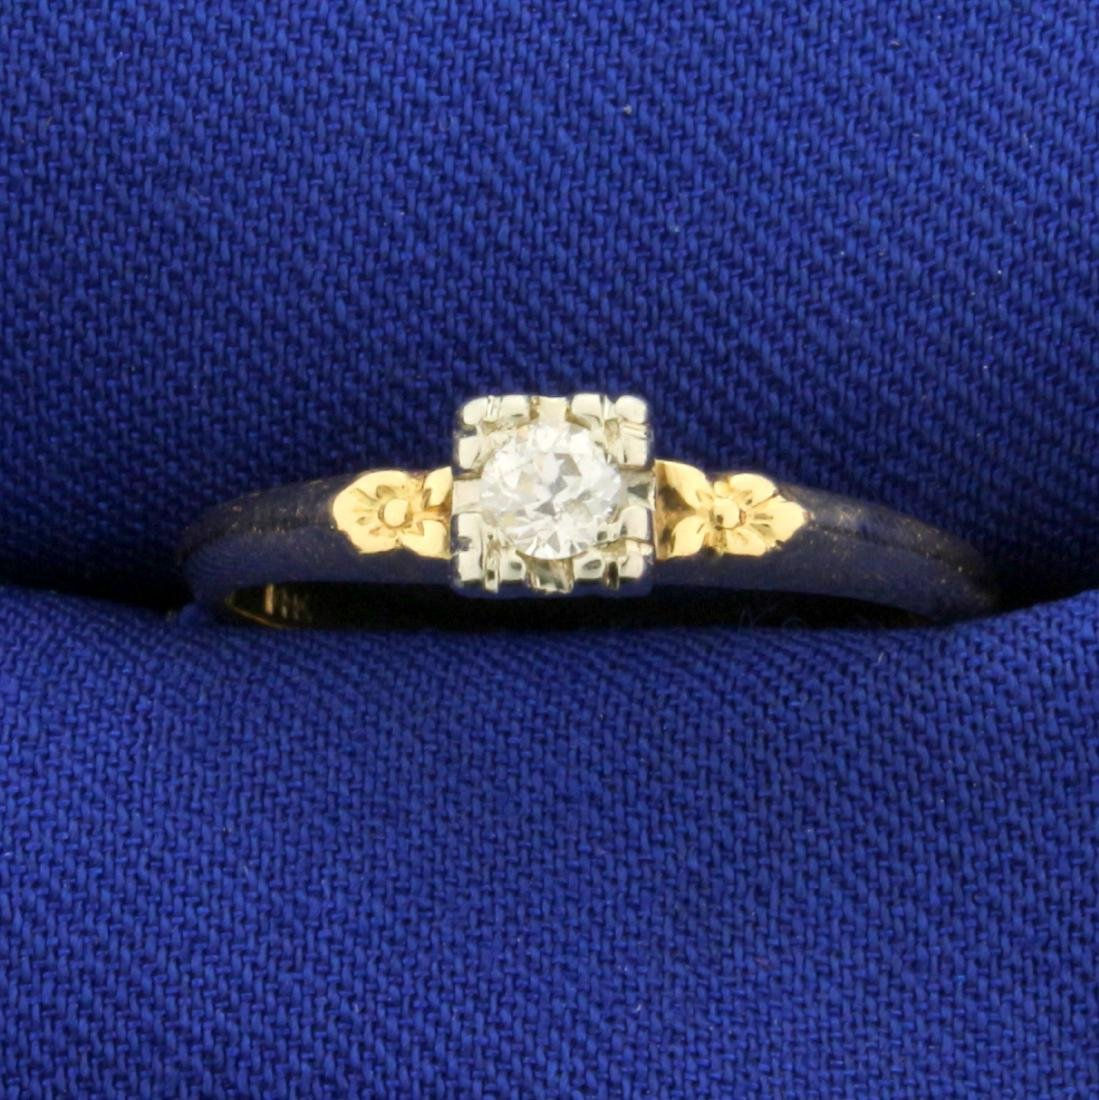 Antique Old European Cut Diamond Solitaire Ring in 14K